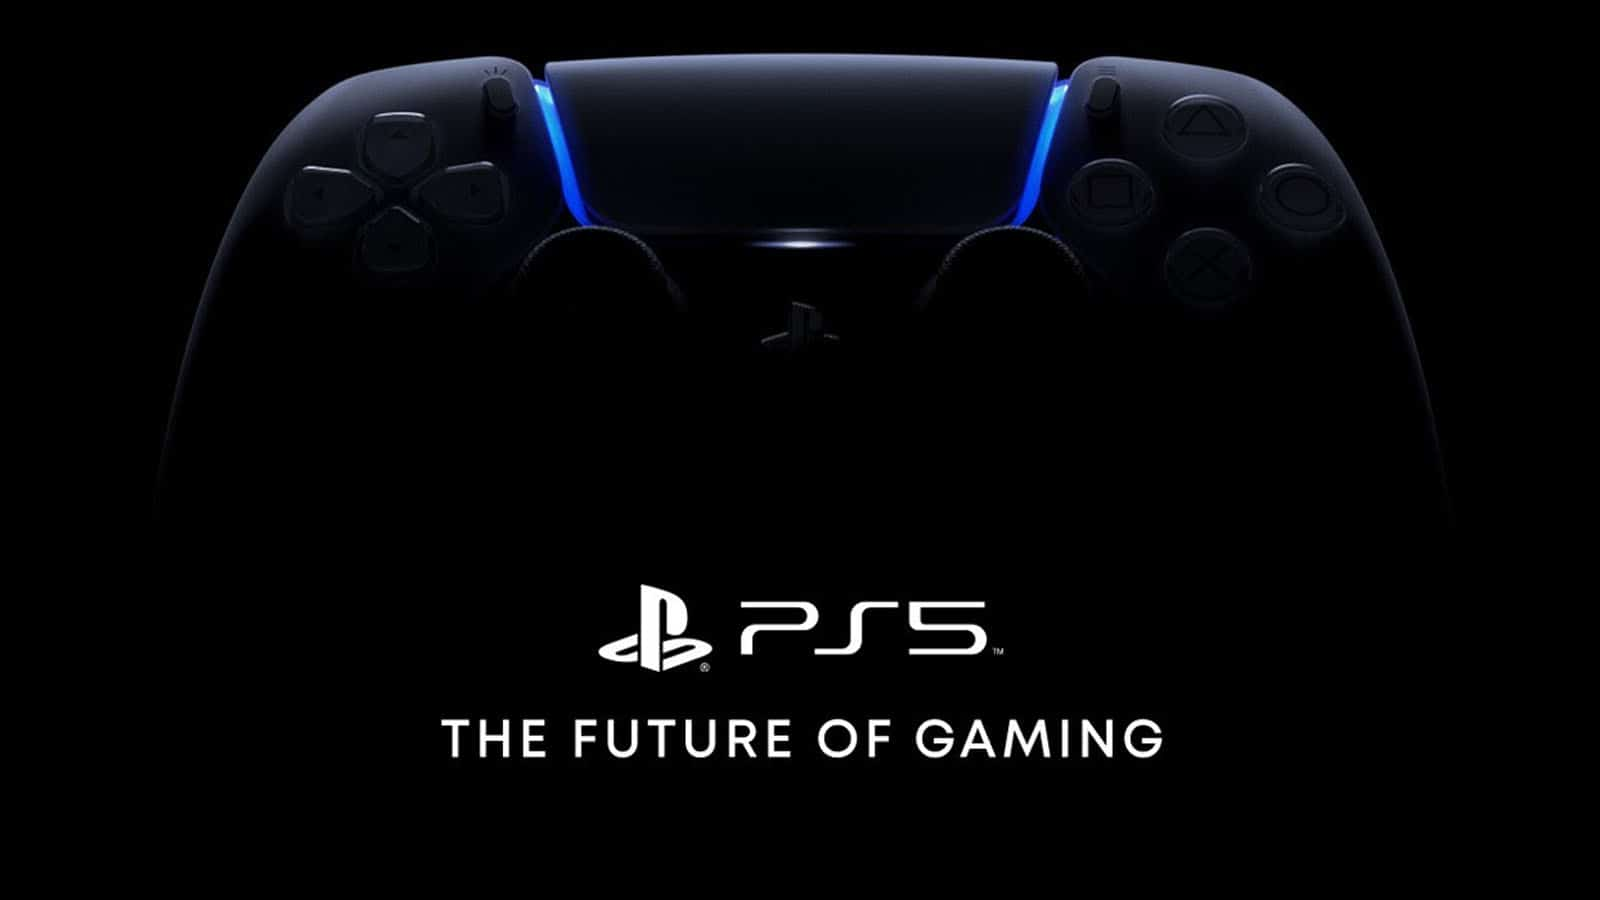 playstation 5 game reveal event